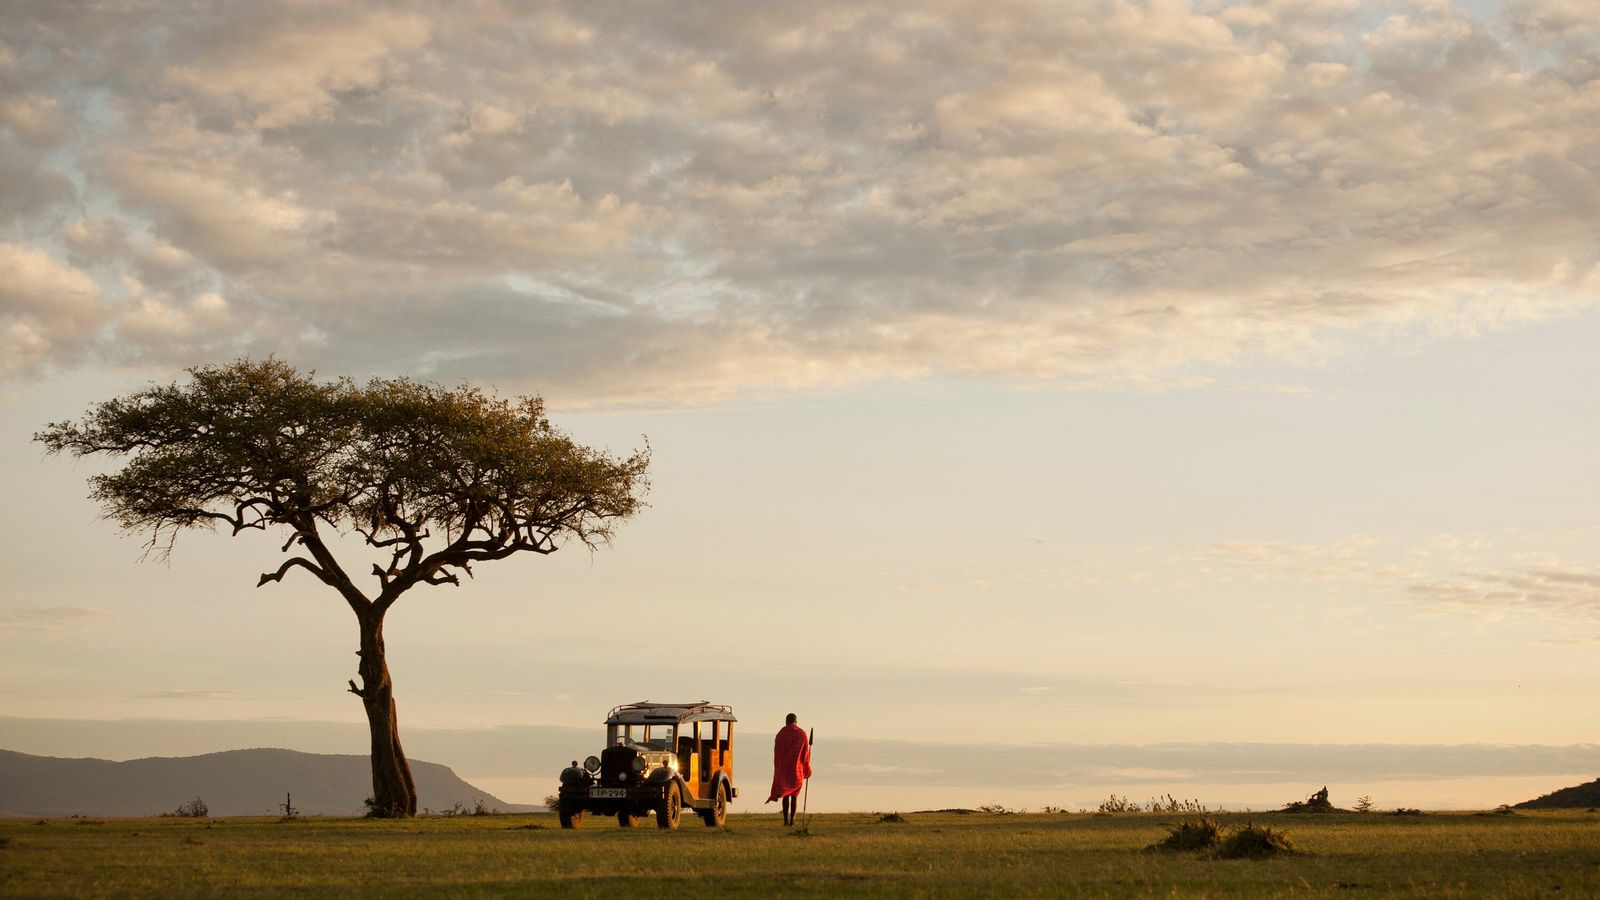 Exploring Kenya'sMaasai Mara features prominently on many people's travel wish lists. But how can you make ...